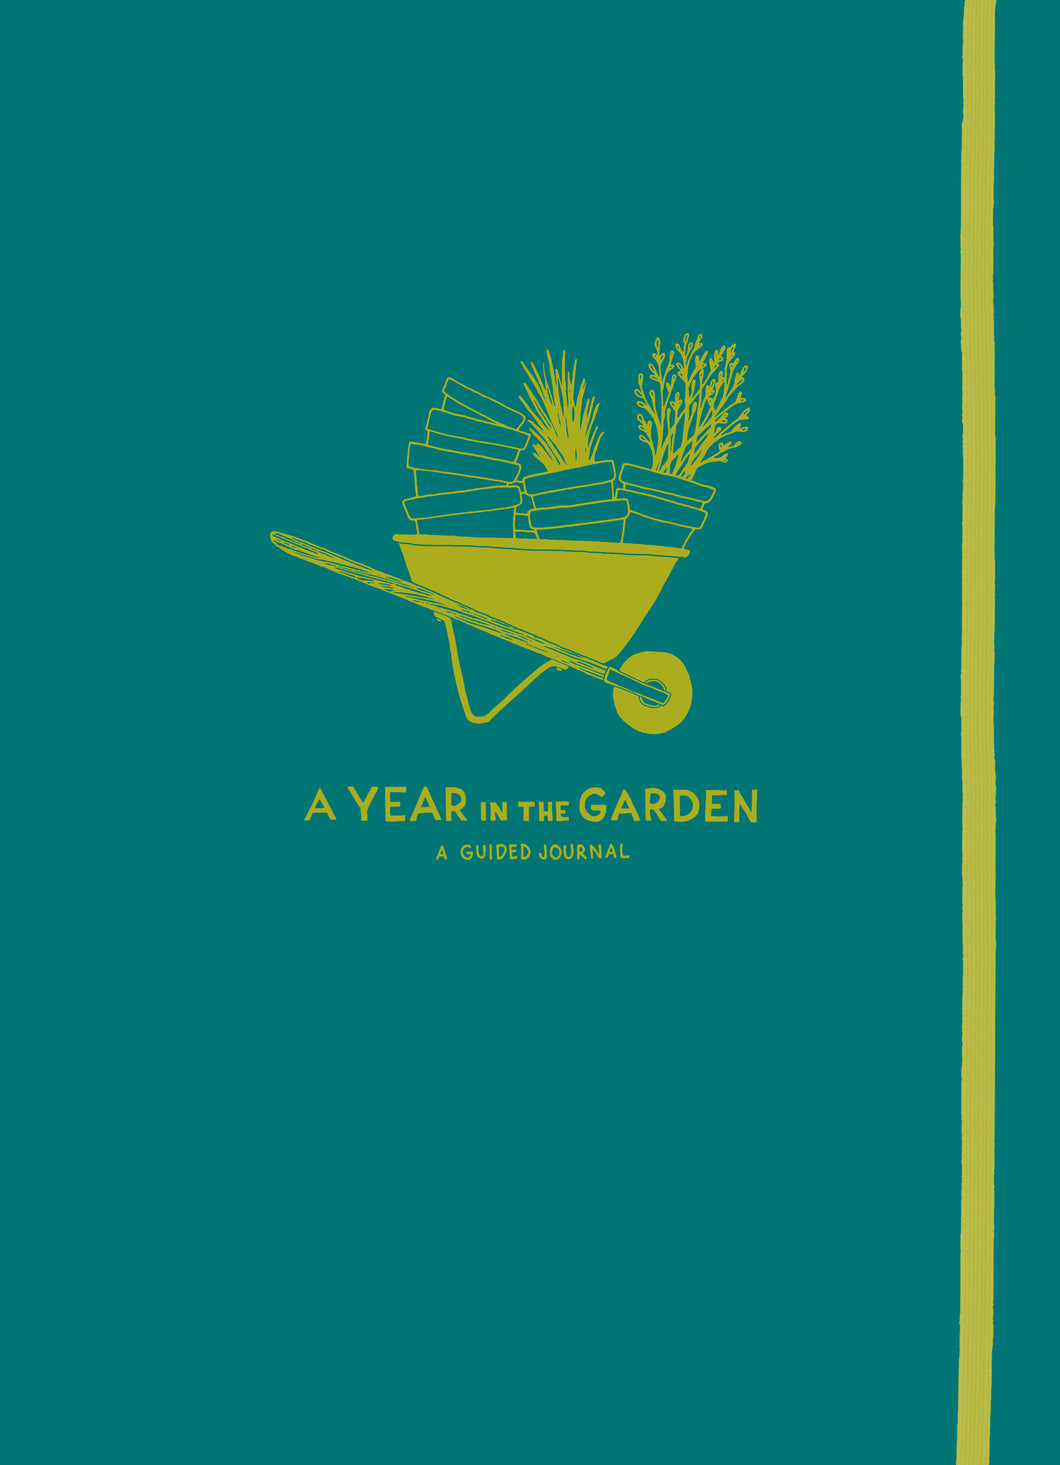 Year in the Garden: A Guided Journal